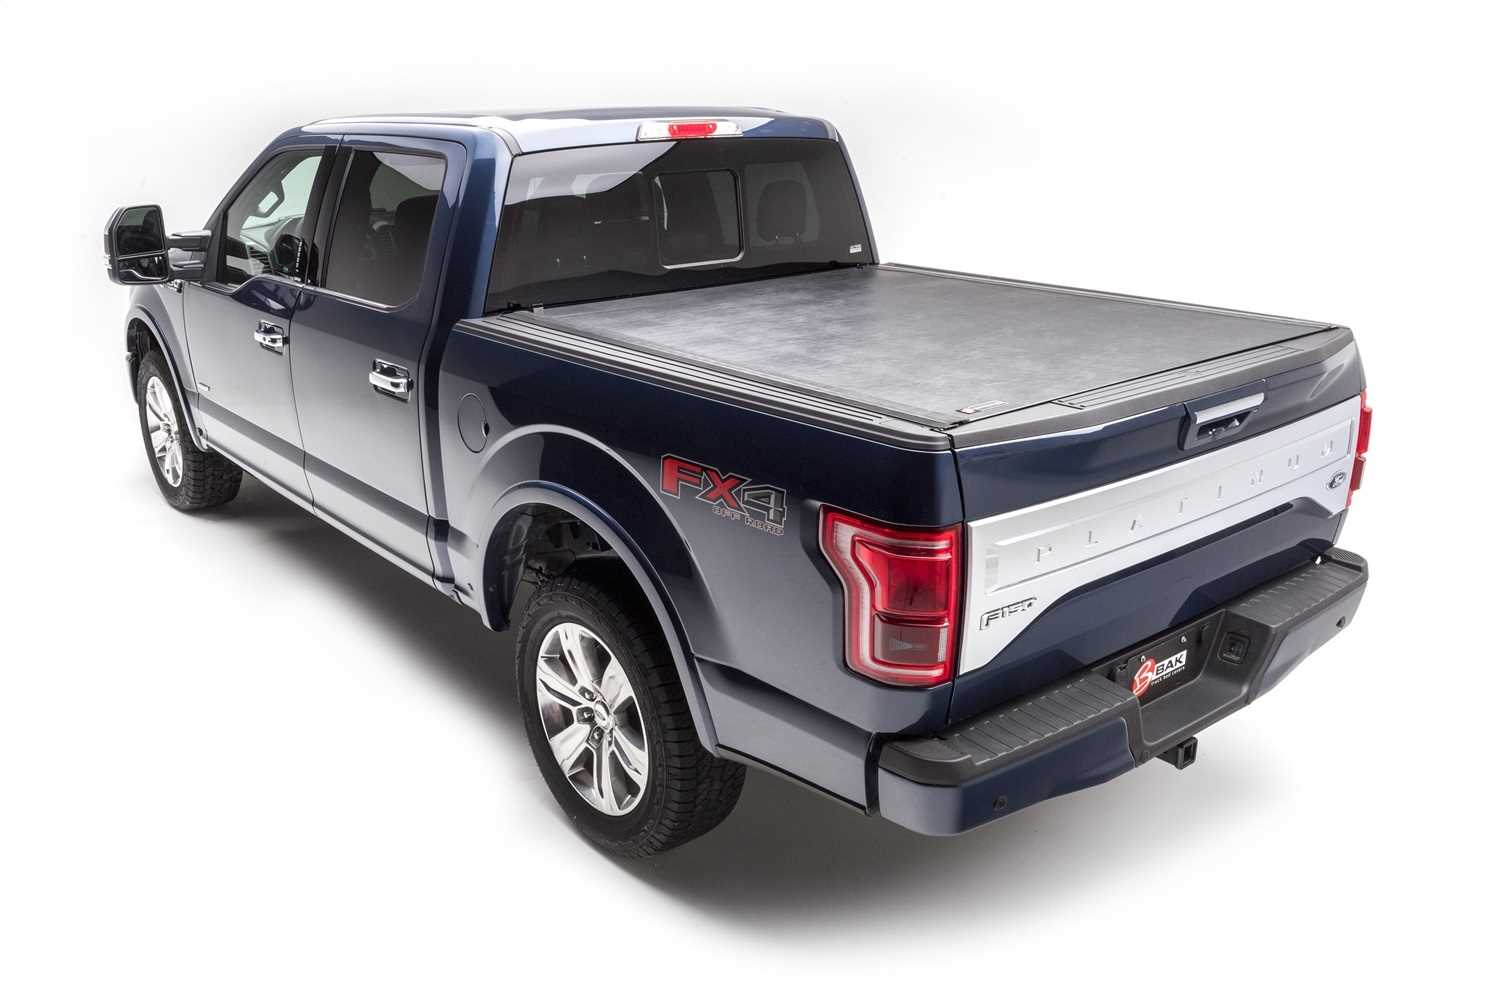 39304 Bak Industries Revolver X2 Hard Rolling Truck Bed Cover